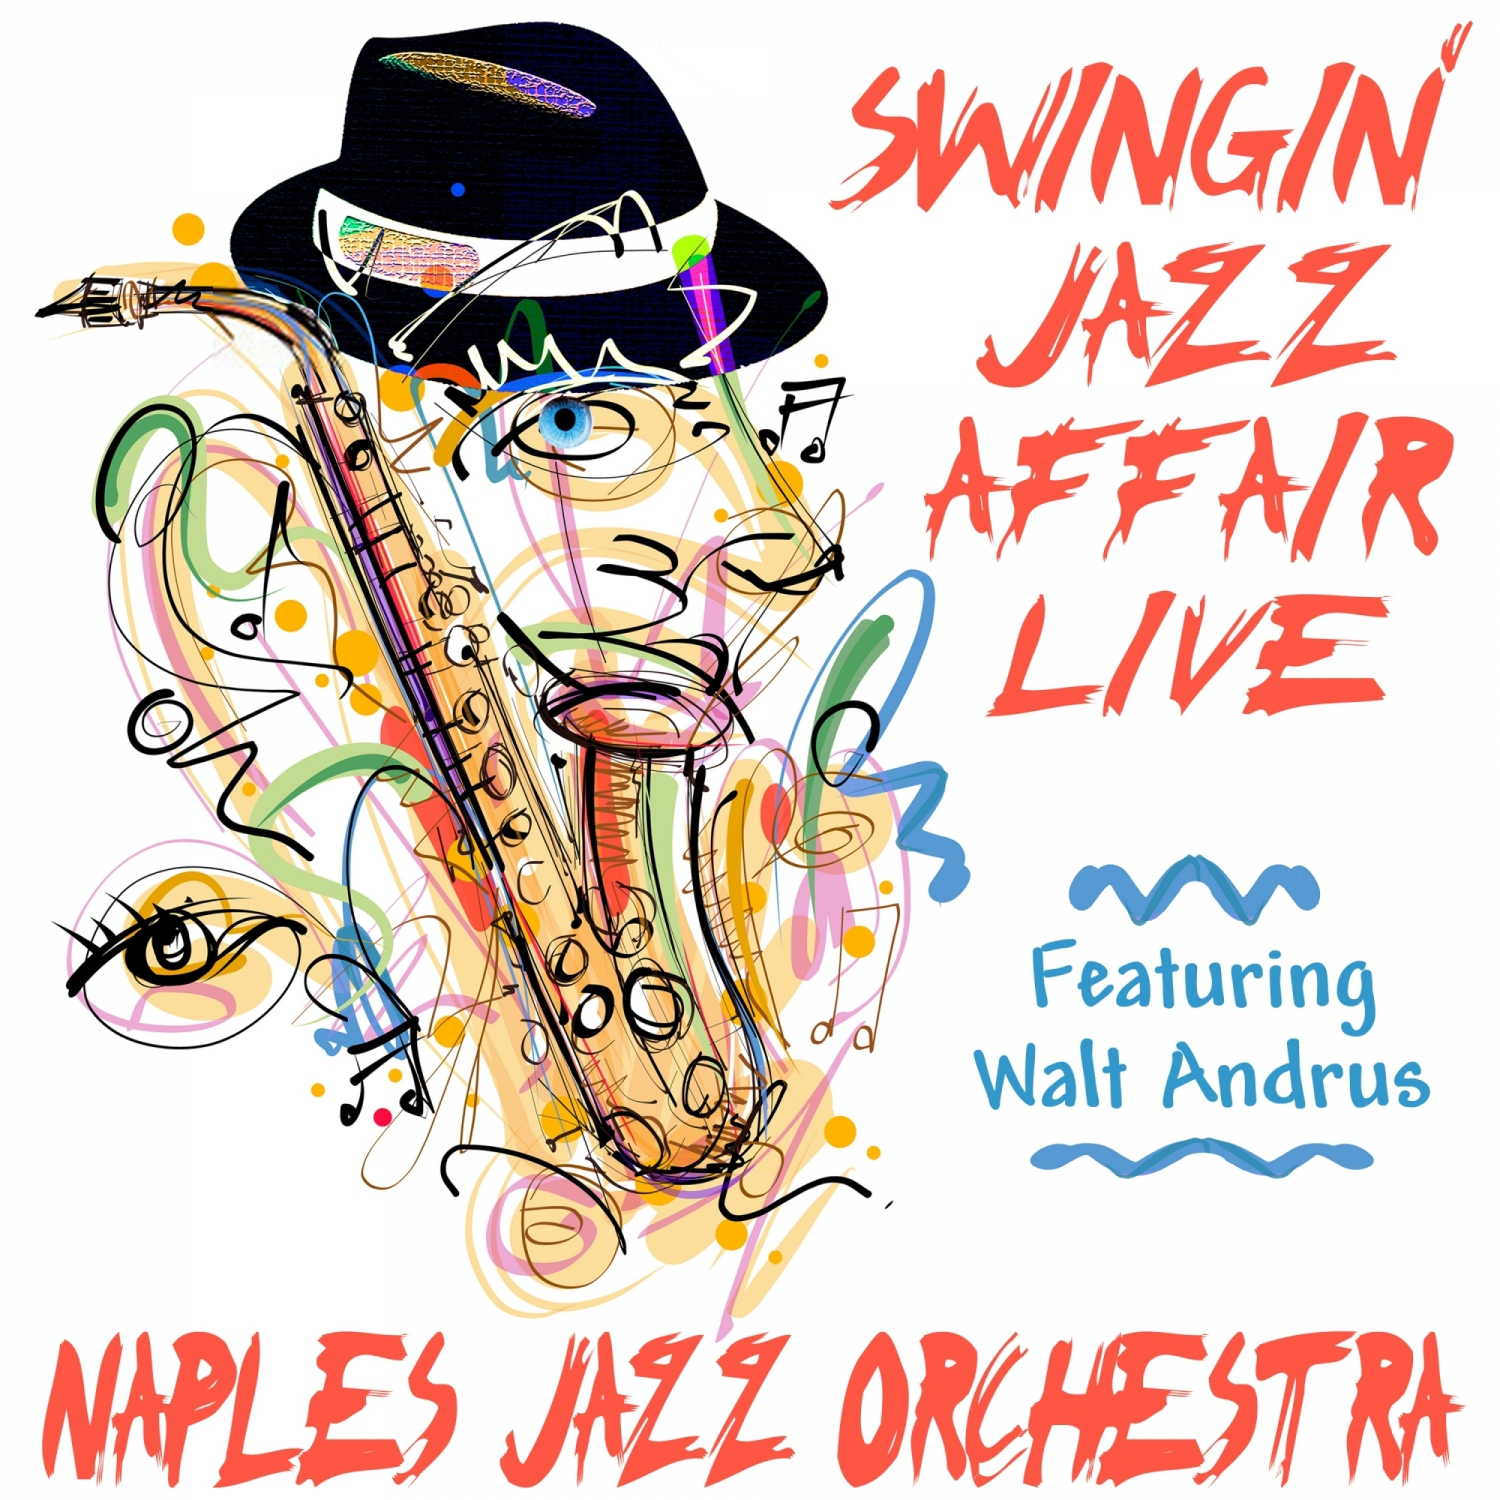 The Naples Jazz Orchestra  - Oh! Look at Me Now  (feat. Walt Andrus)